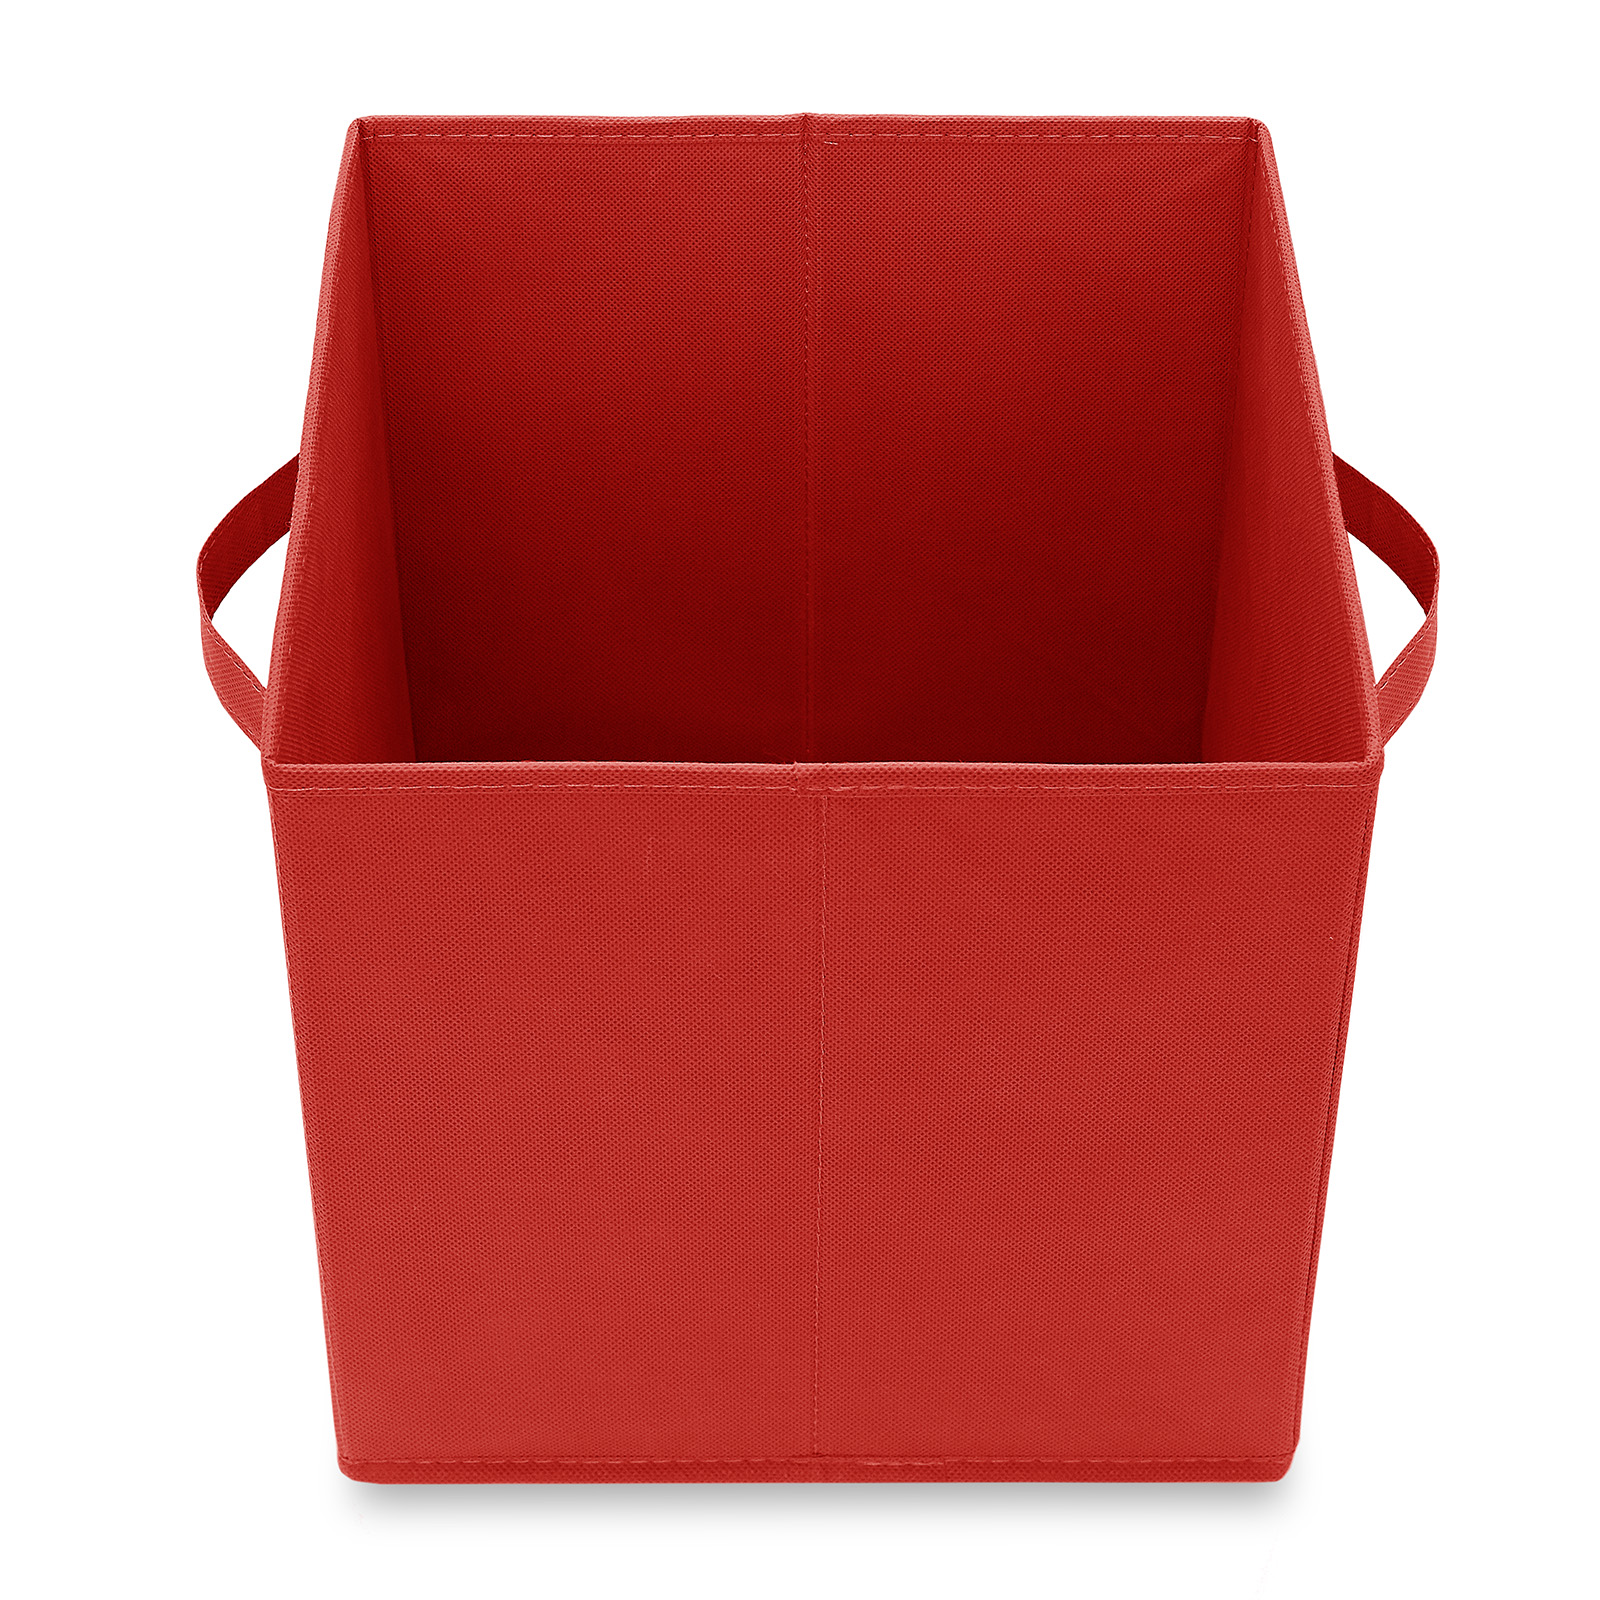 6-Collapsible-Foldable-Cloth-Fabric-Cubby-Cube-Storage-Bins-Baskets-for-Shelves thumbnail 65